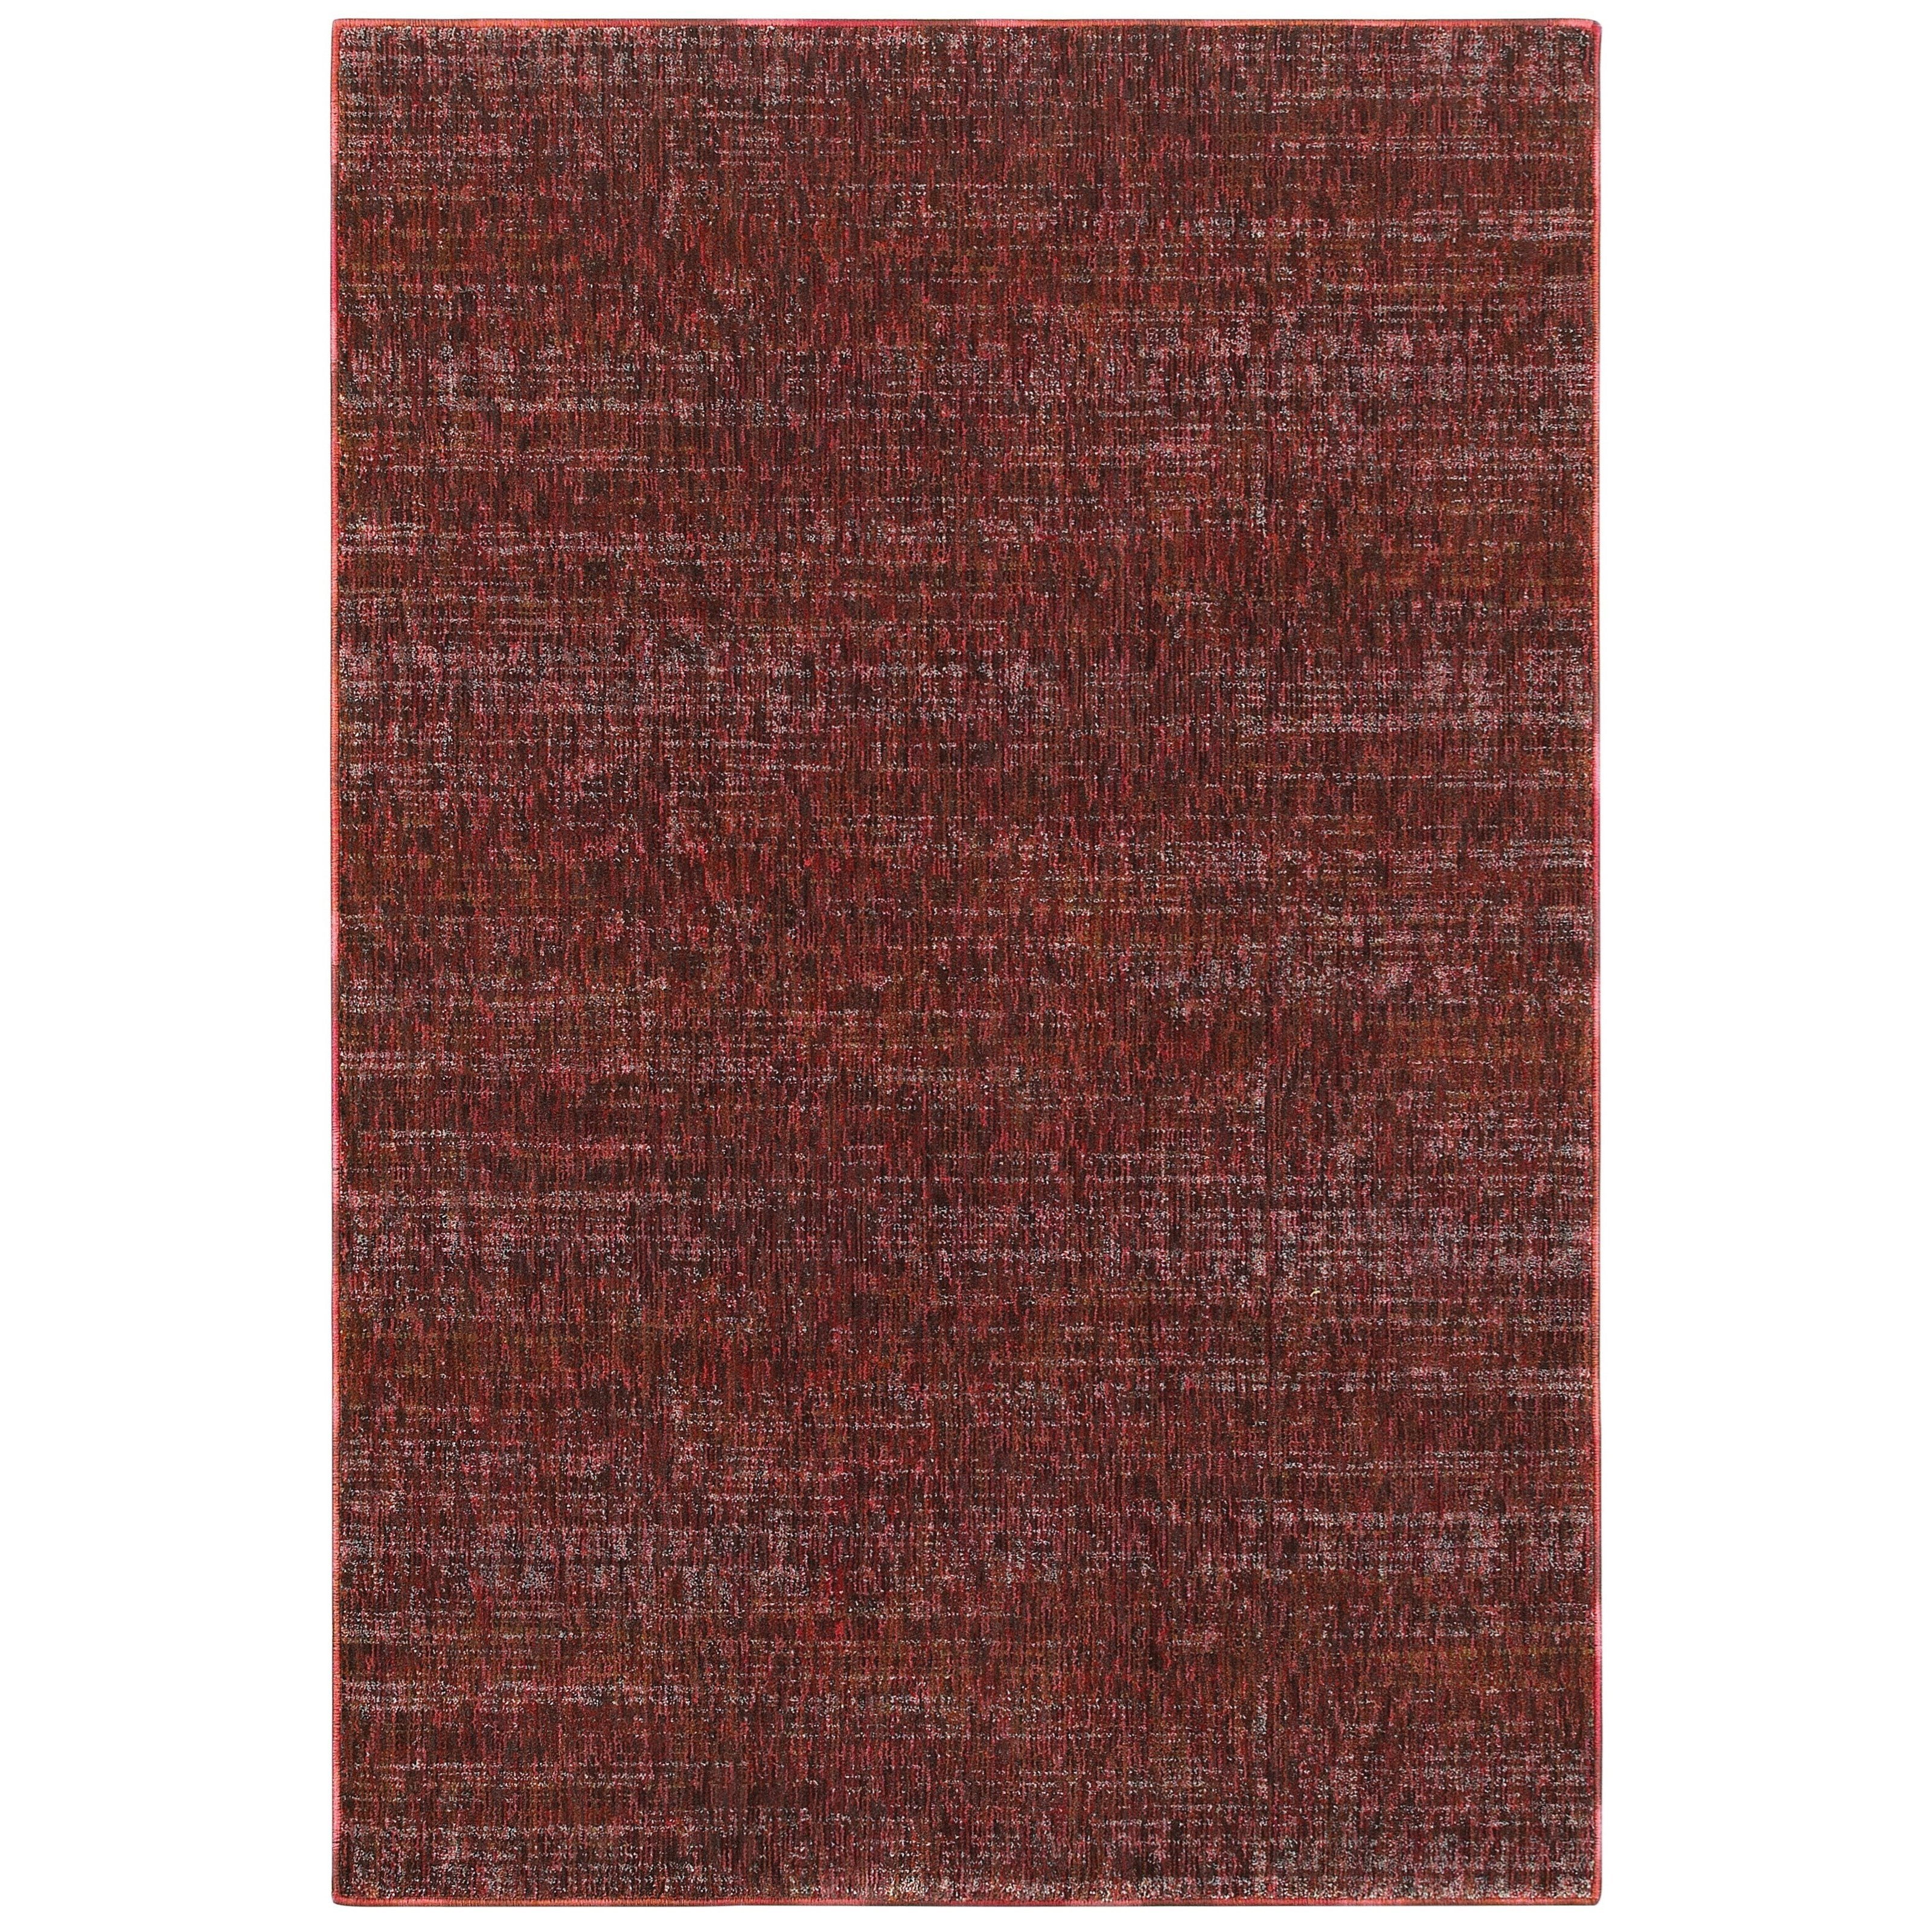 "Atlas 7'10"" X 10'10"" Rectangle Rug by Oriental Weavers at Dunk & Bright Furniture"